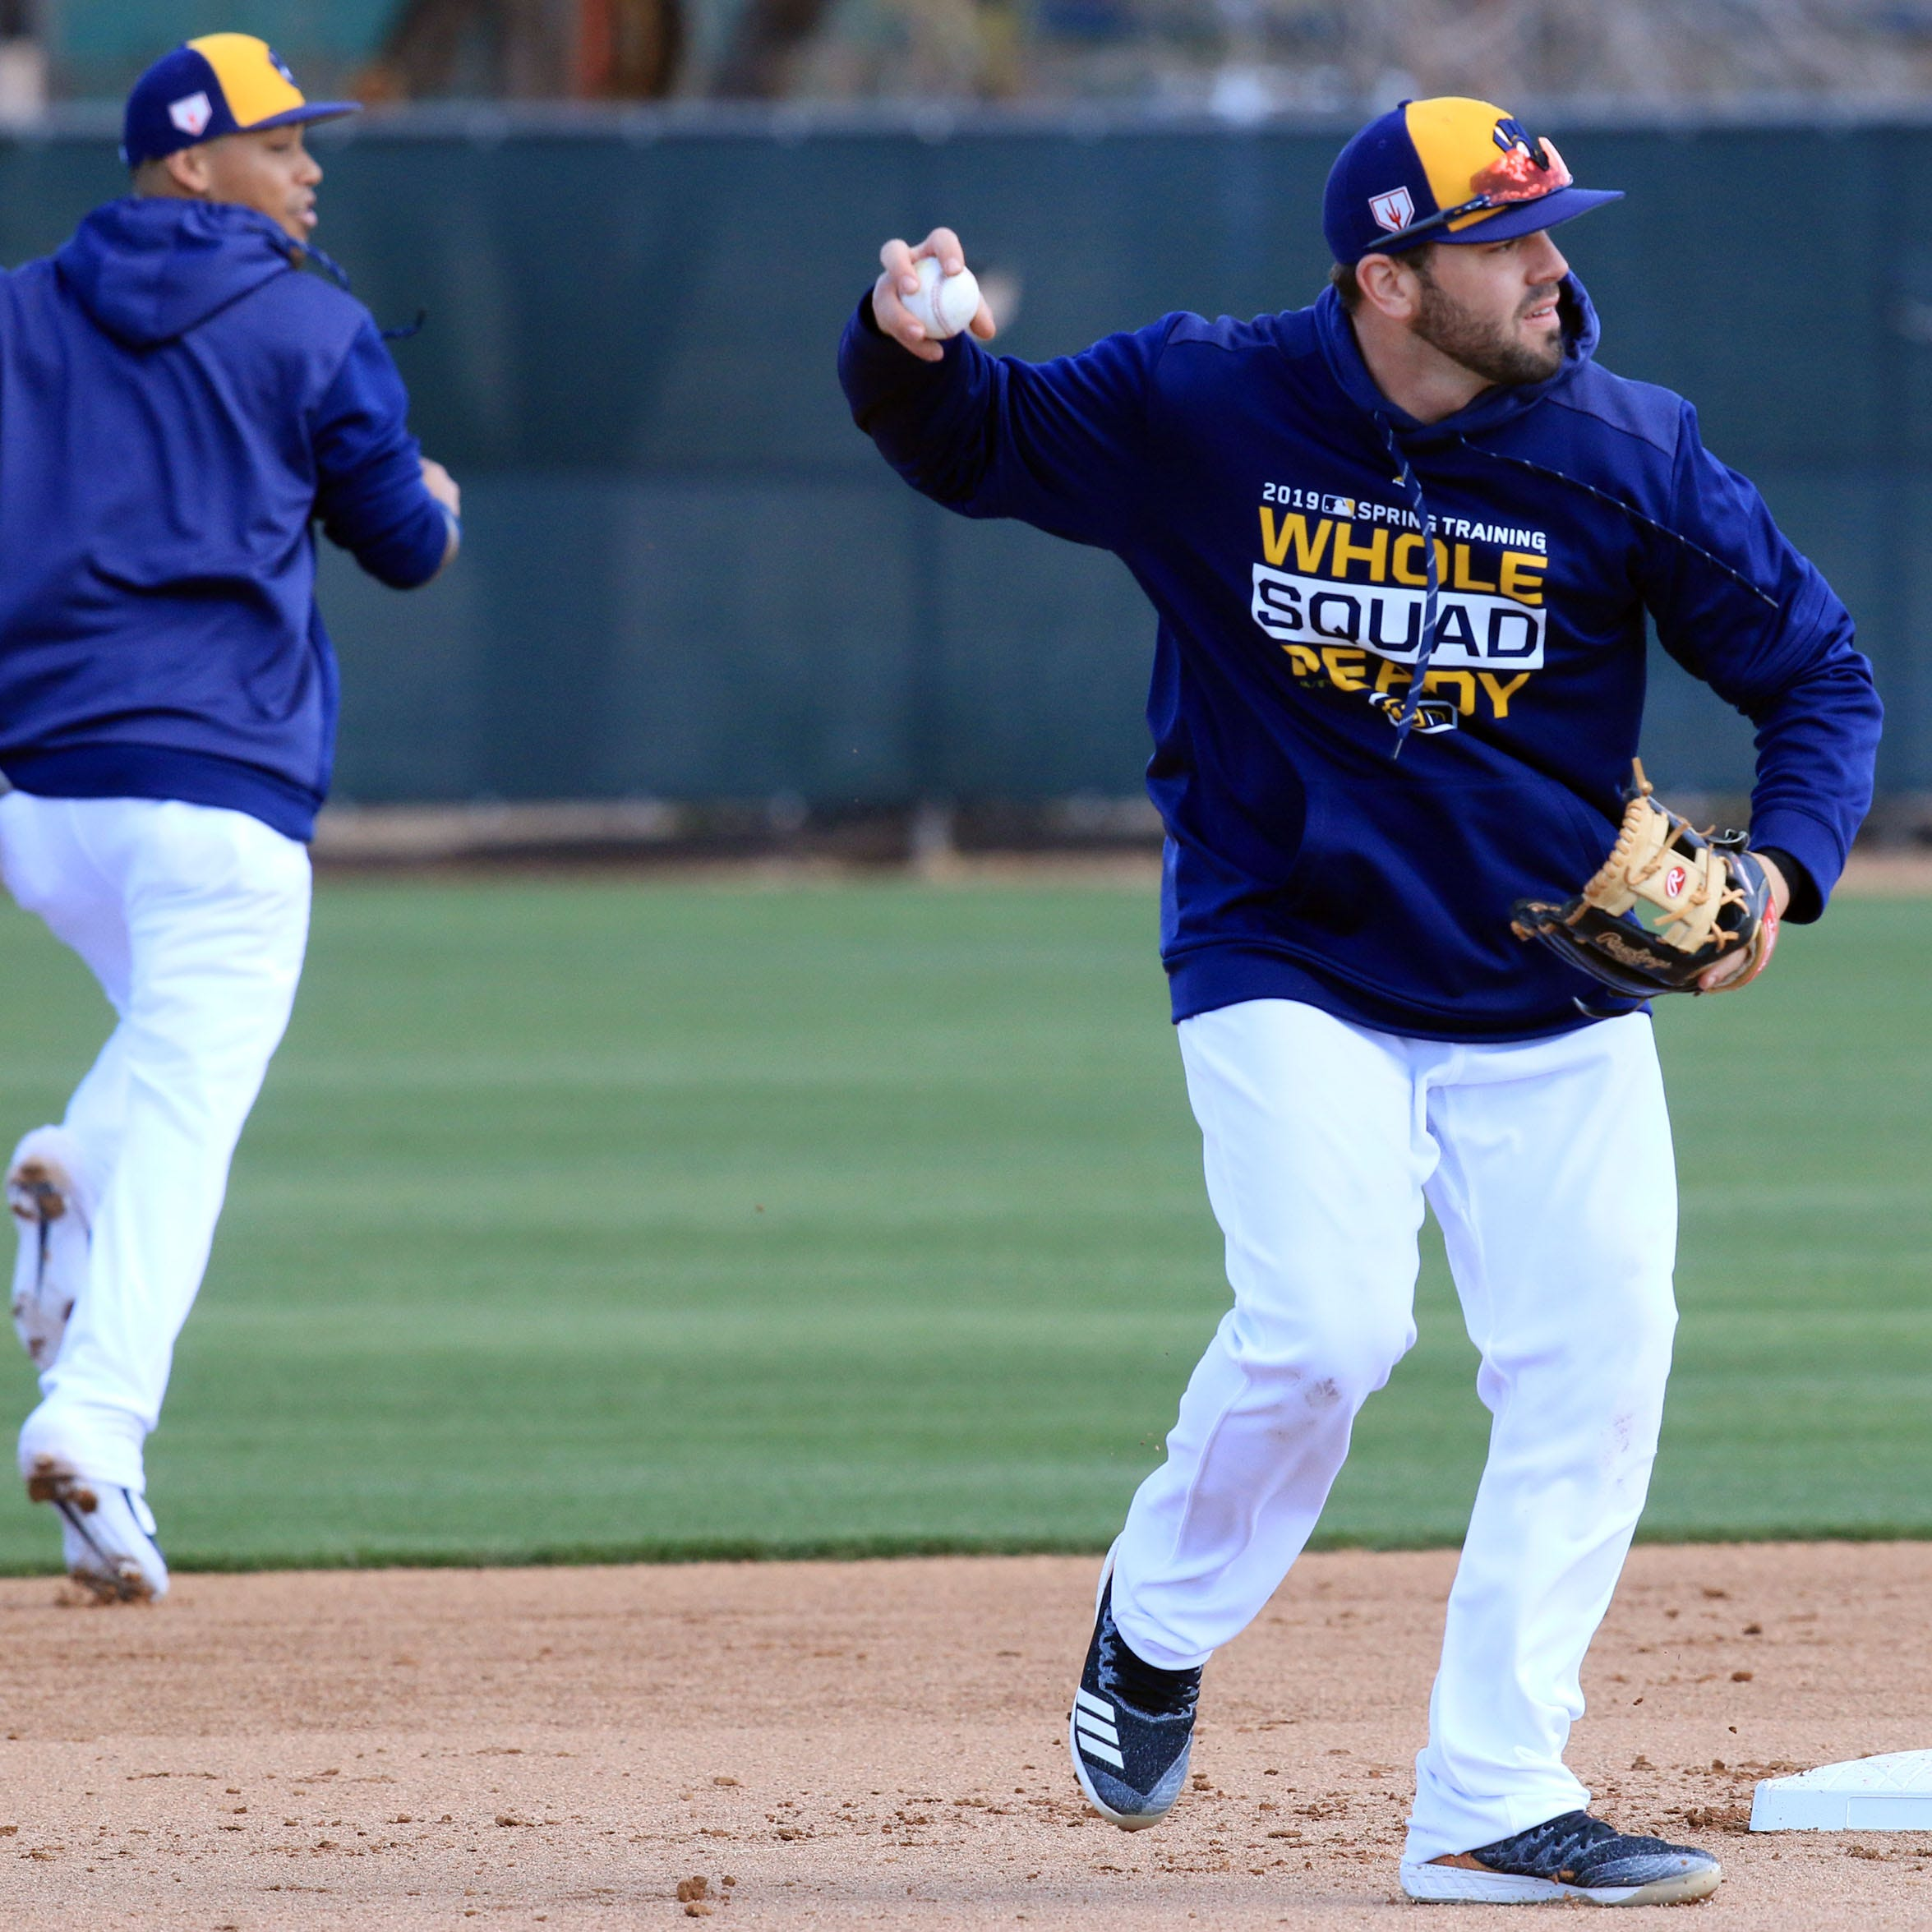 Mike Moustakas returns to the Brewers to take care of some unfinished business